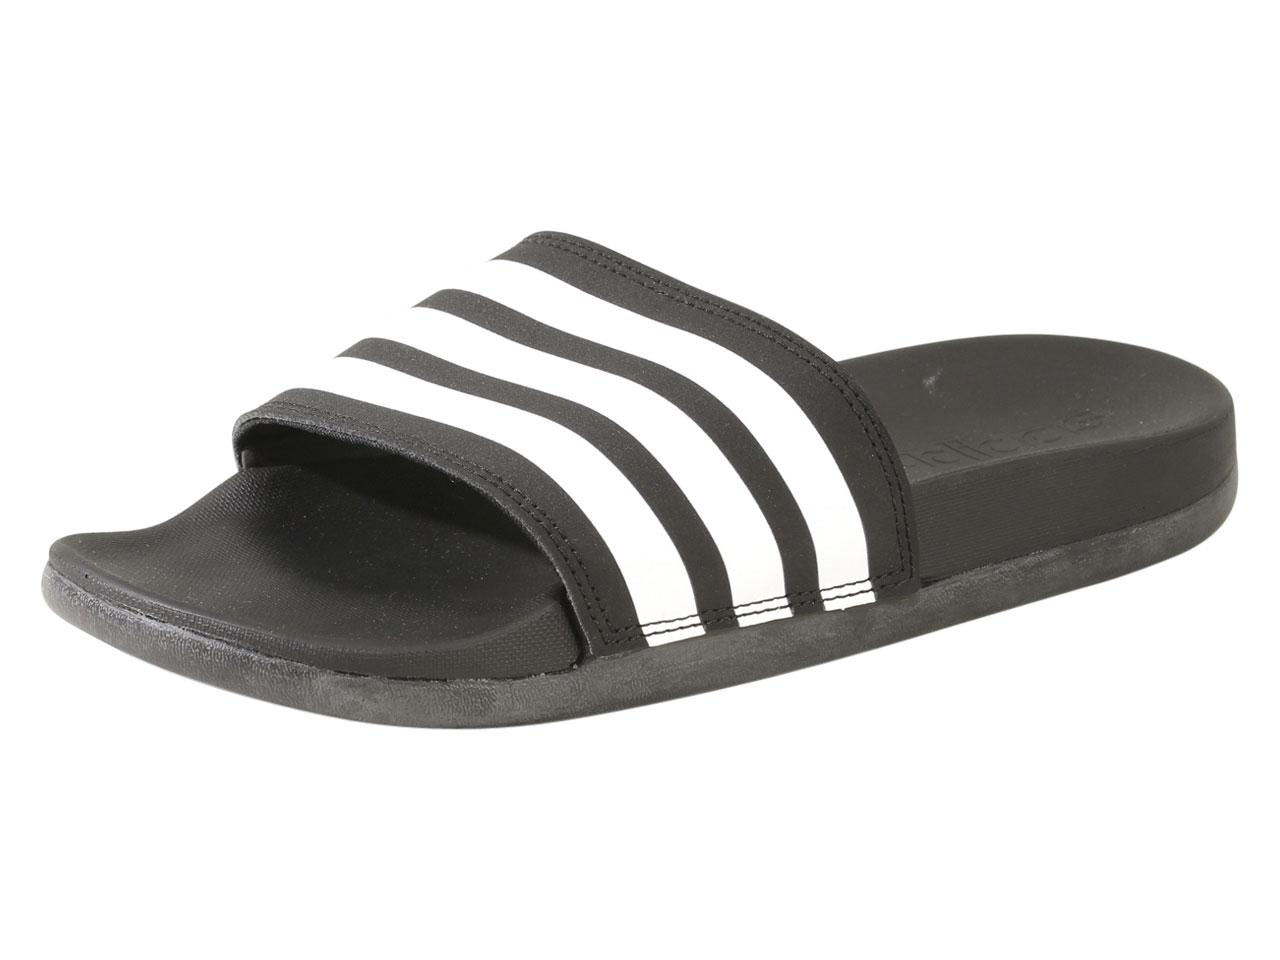 aabd9016 Adidas Men's Adilette Comfort Cloudfoam Plus Slides Sandals Shoes